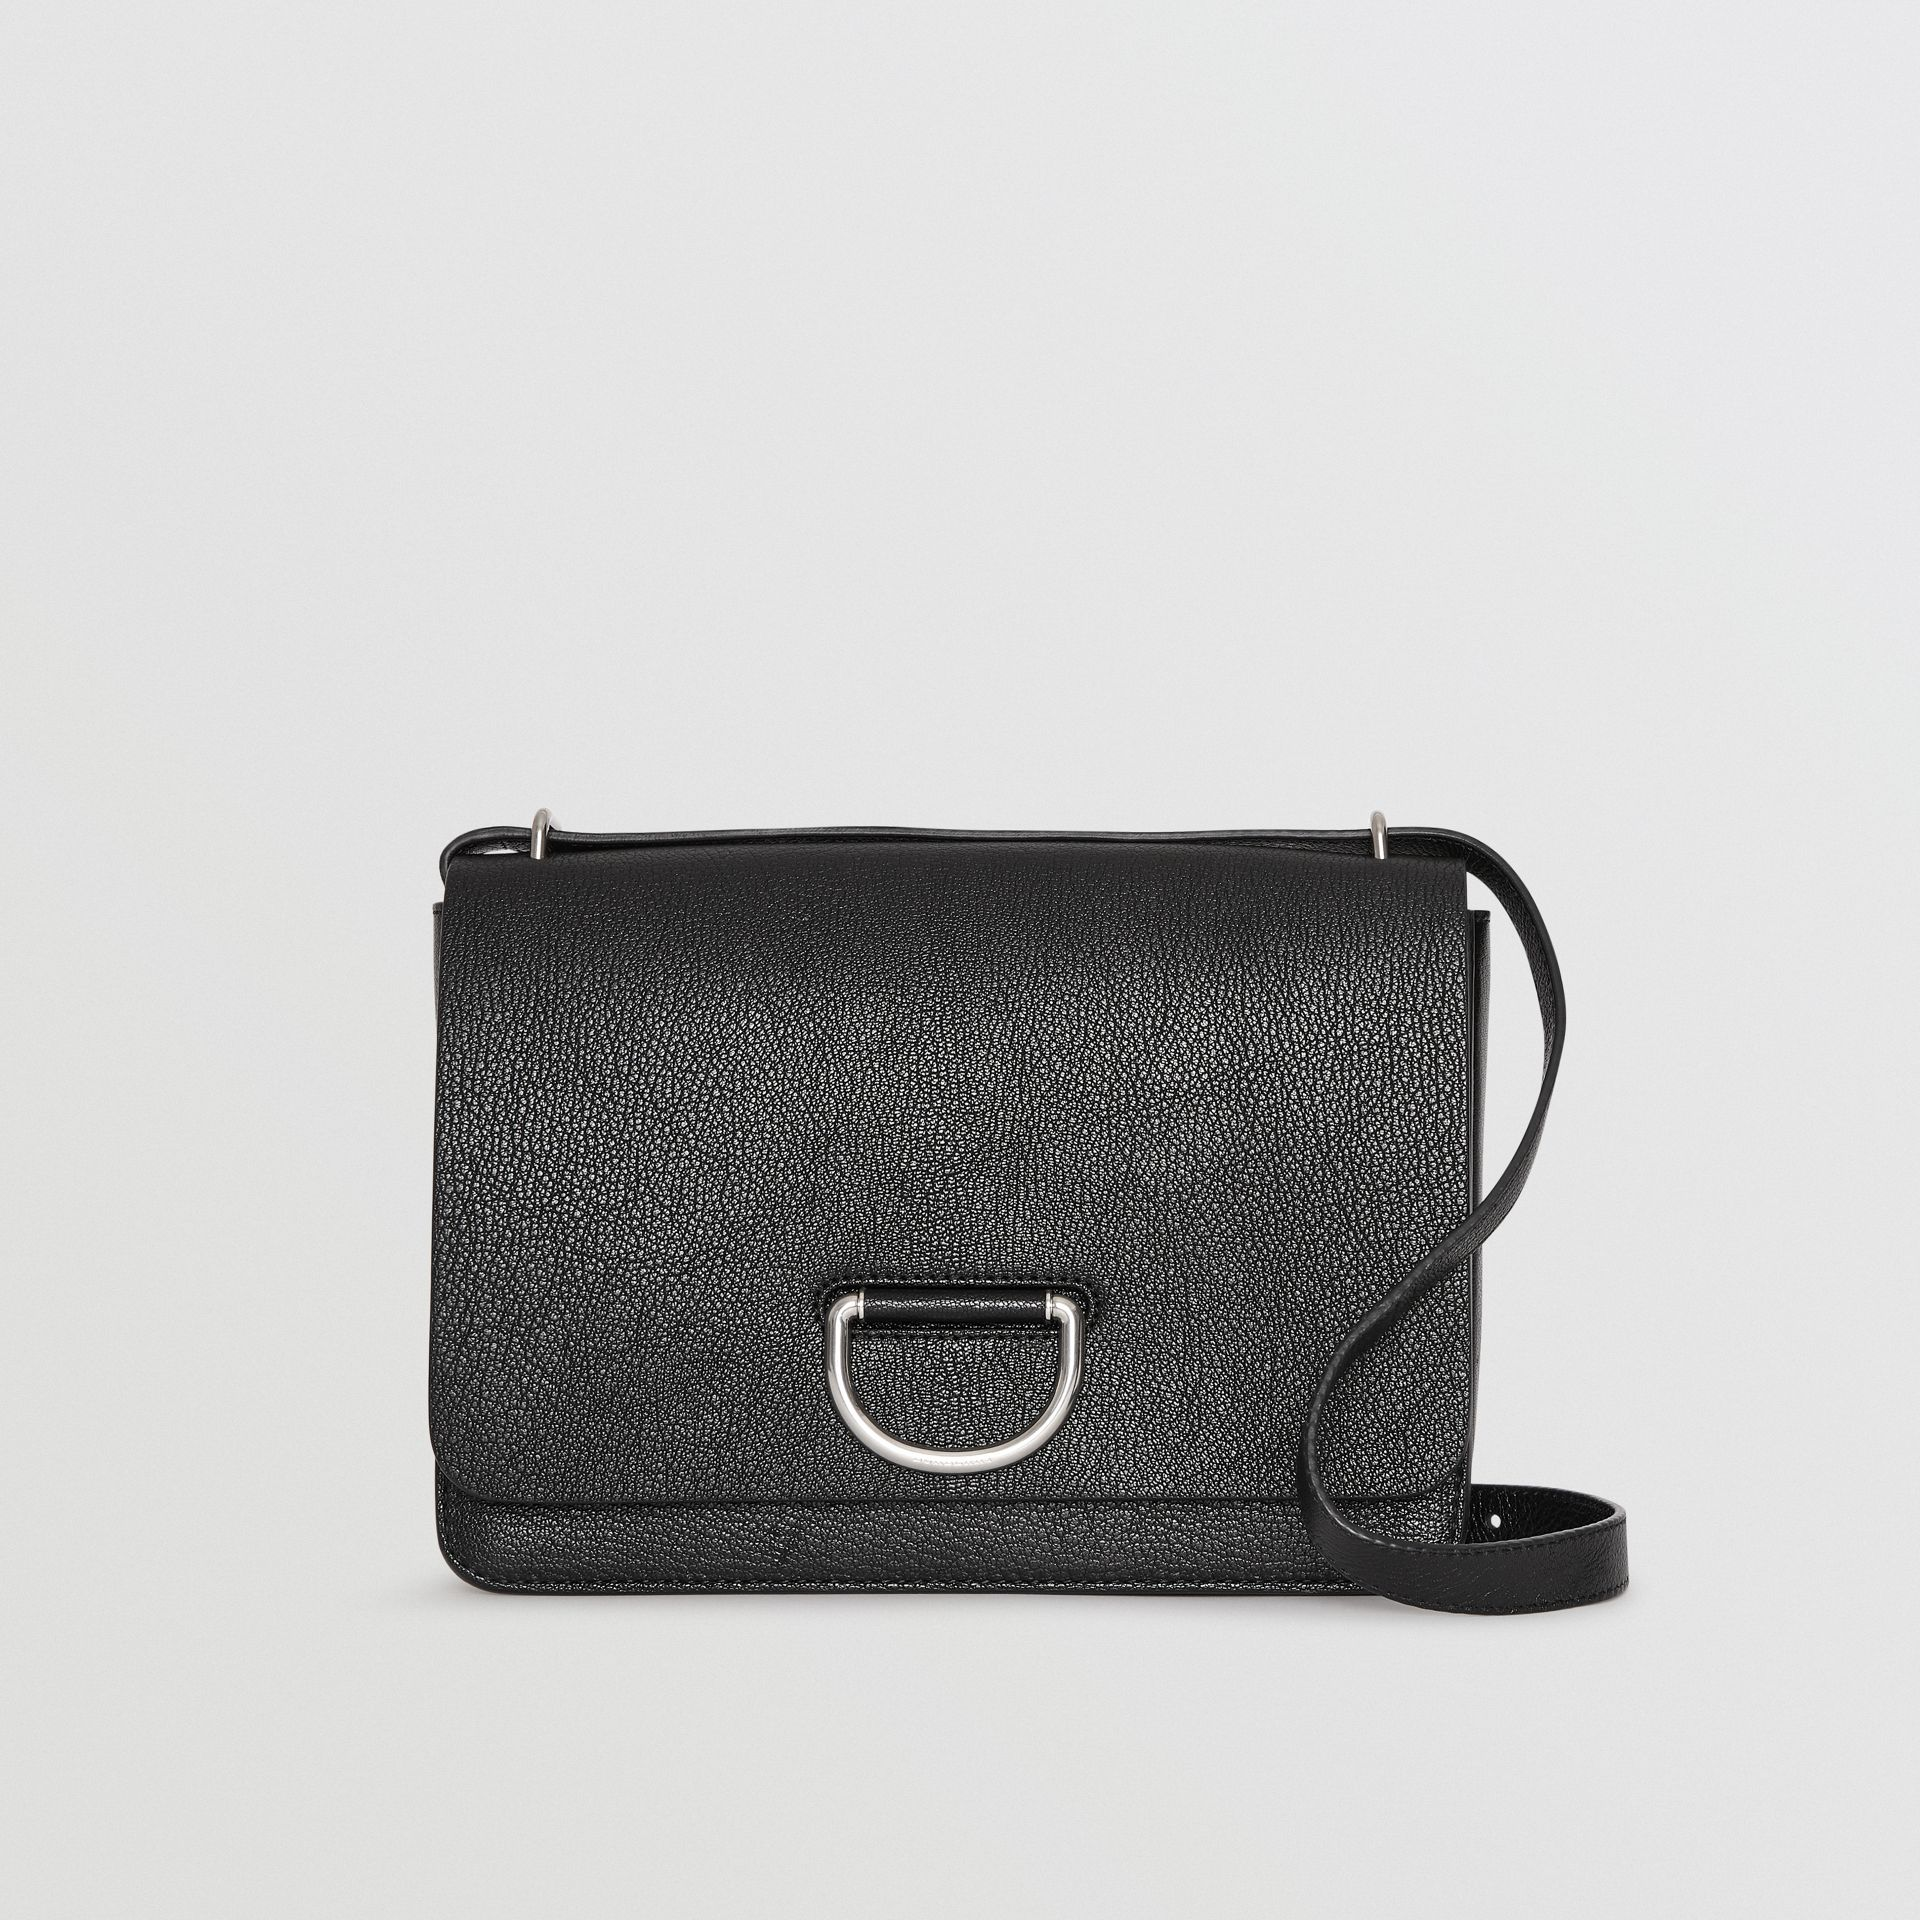 Sac The D-ring moyen en cuir (Noir) - Femme | Burberry Canada - photo de la galerie 0